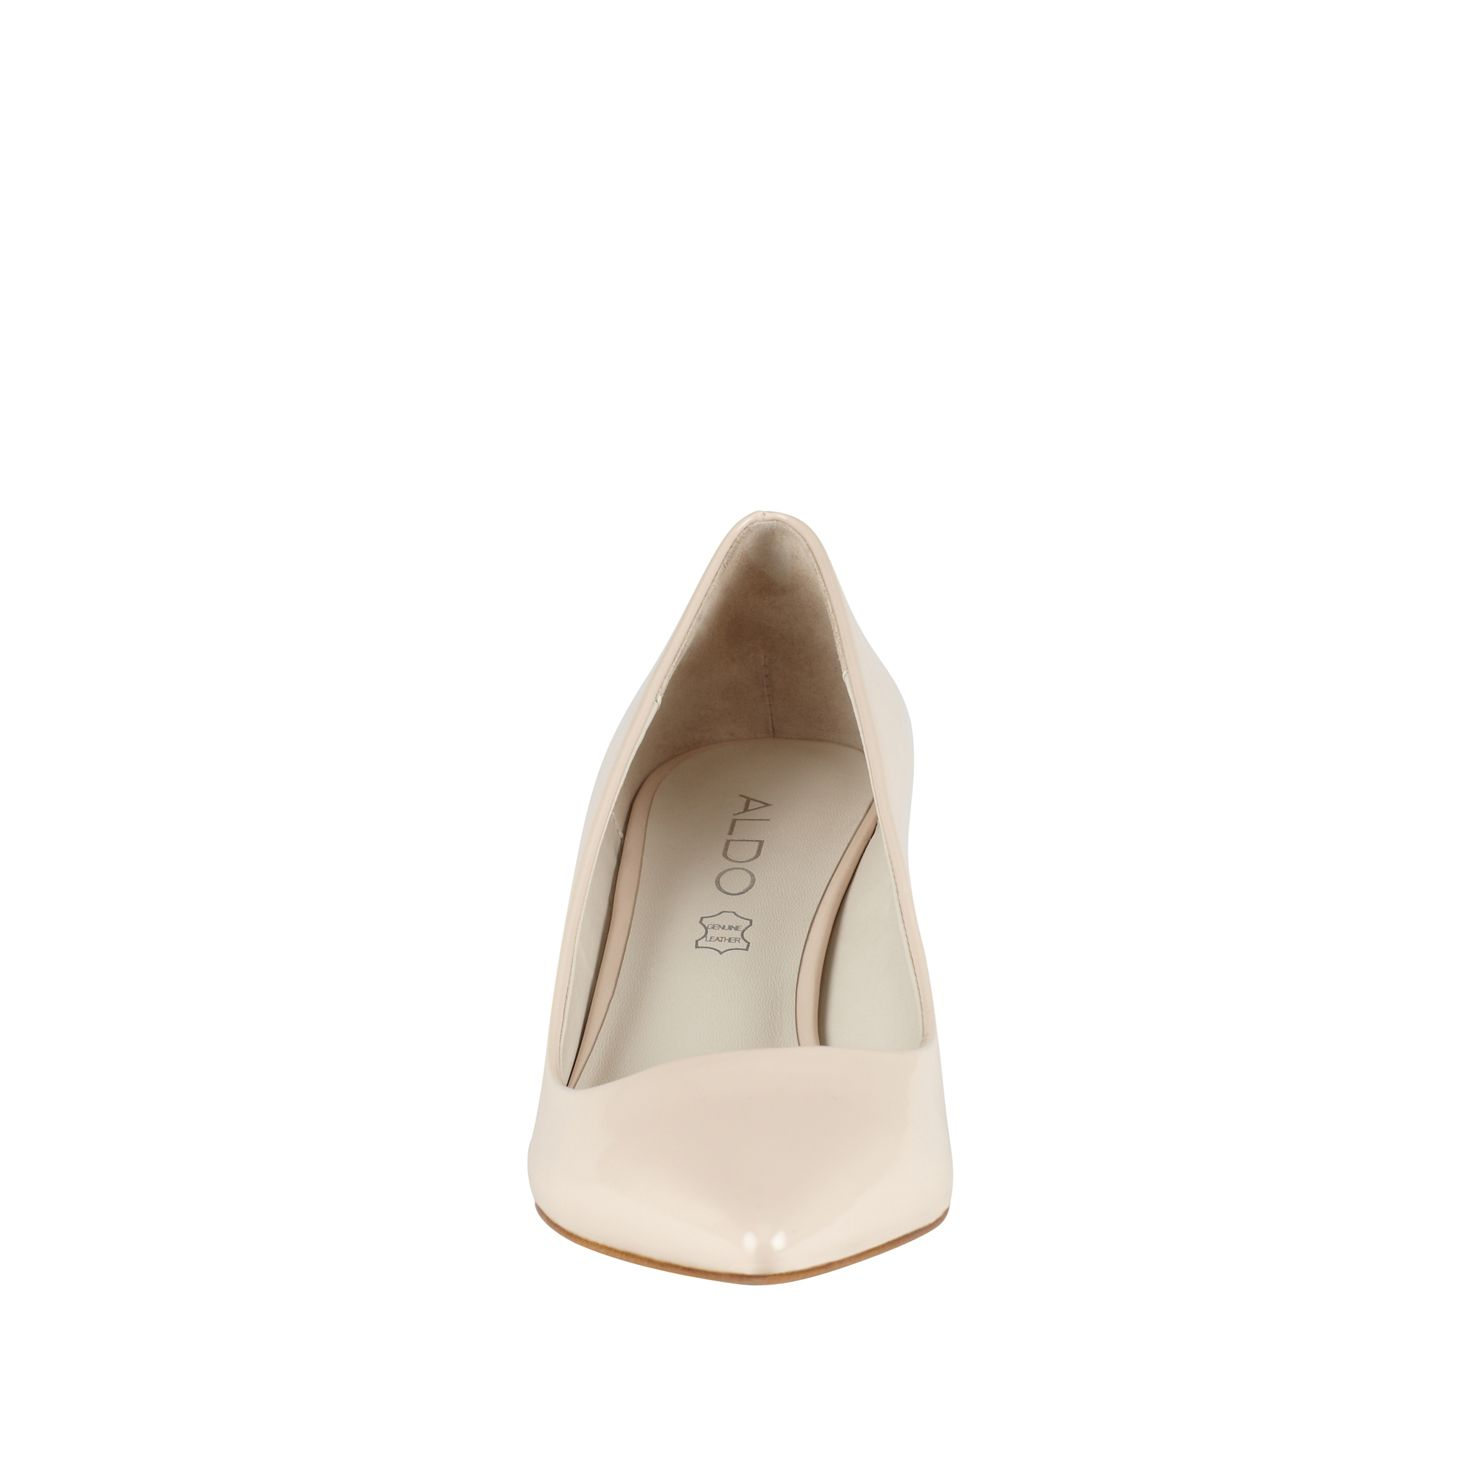 Grenan pointed toe court shoes